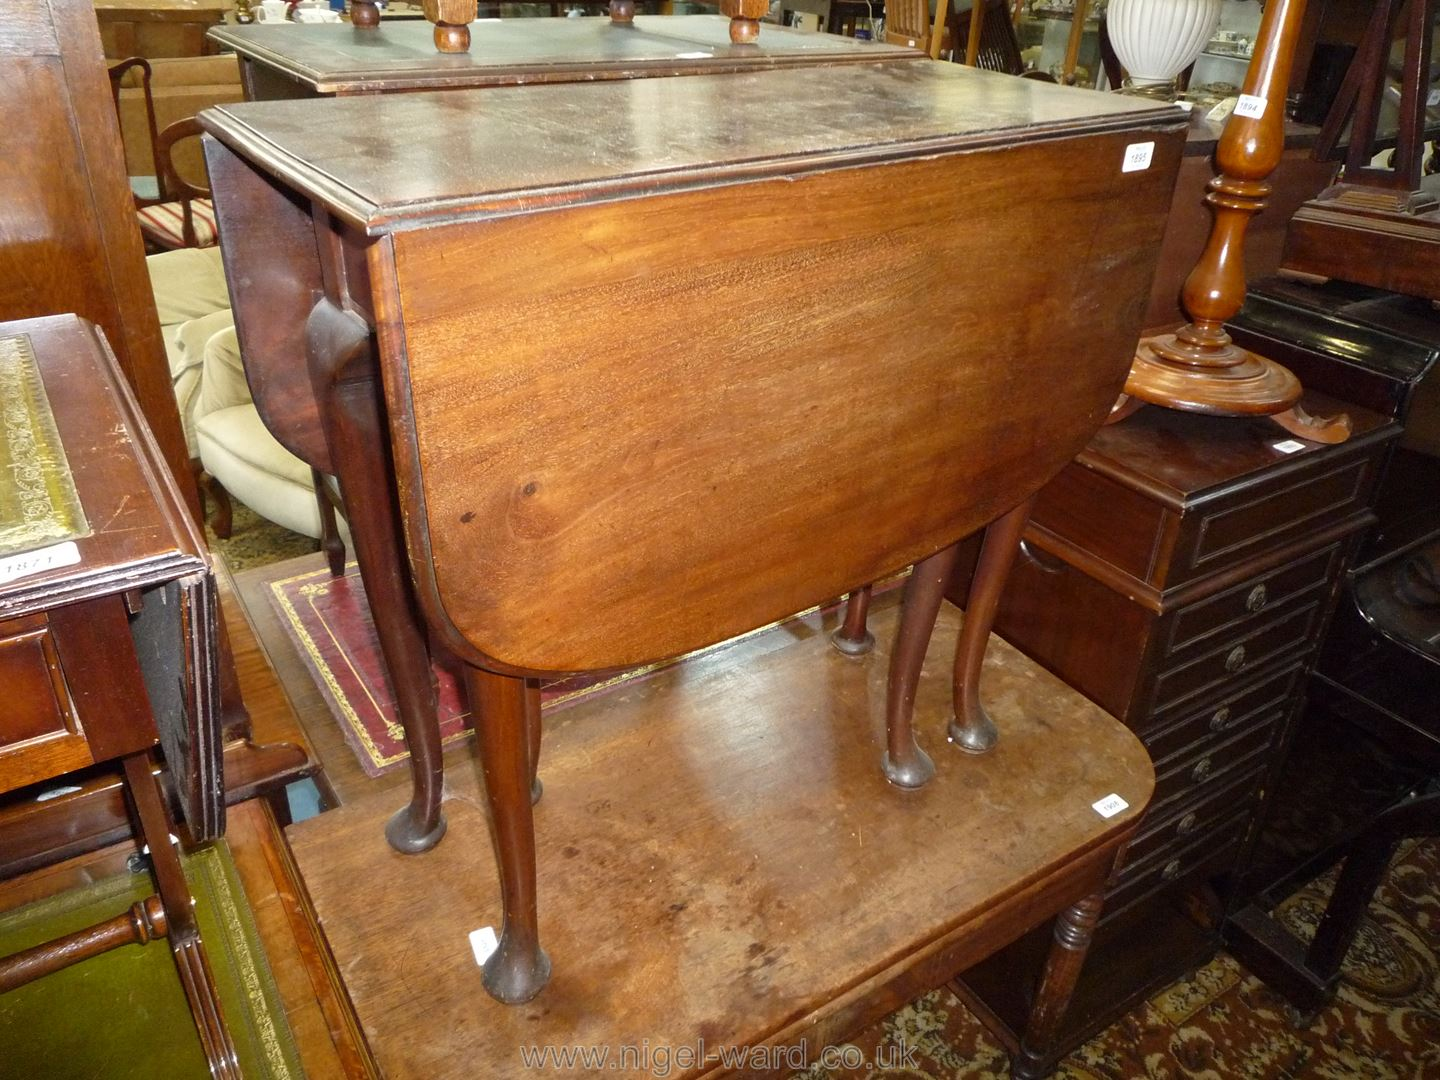 A good Mahogany drop-leaf swing-leg Dining Table standing on cabriole legs terminating in pad feet, - Image 4 of 6